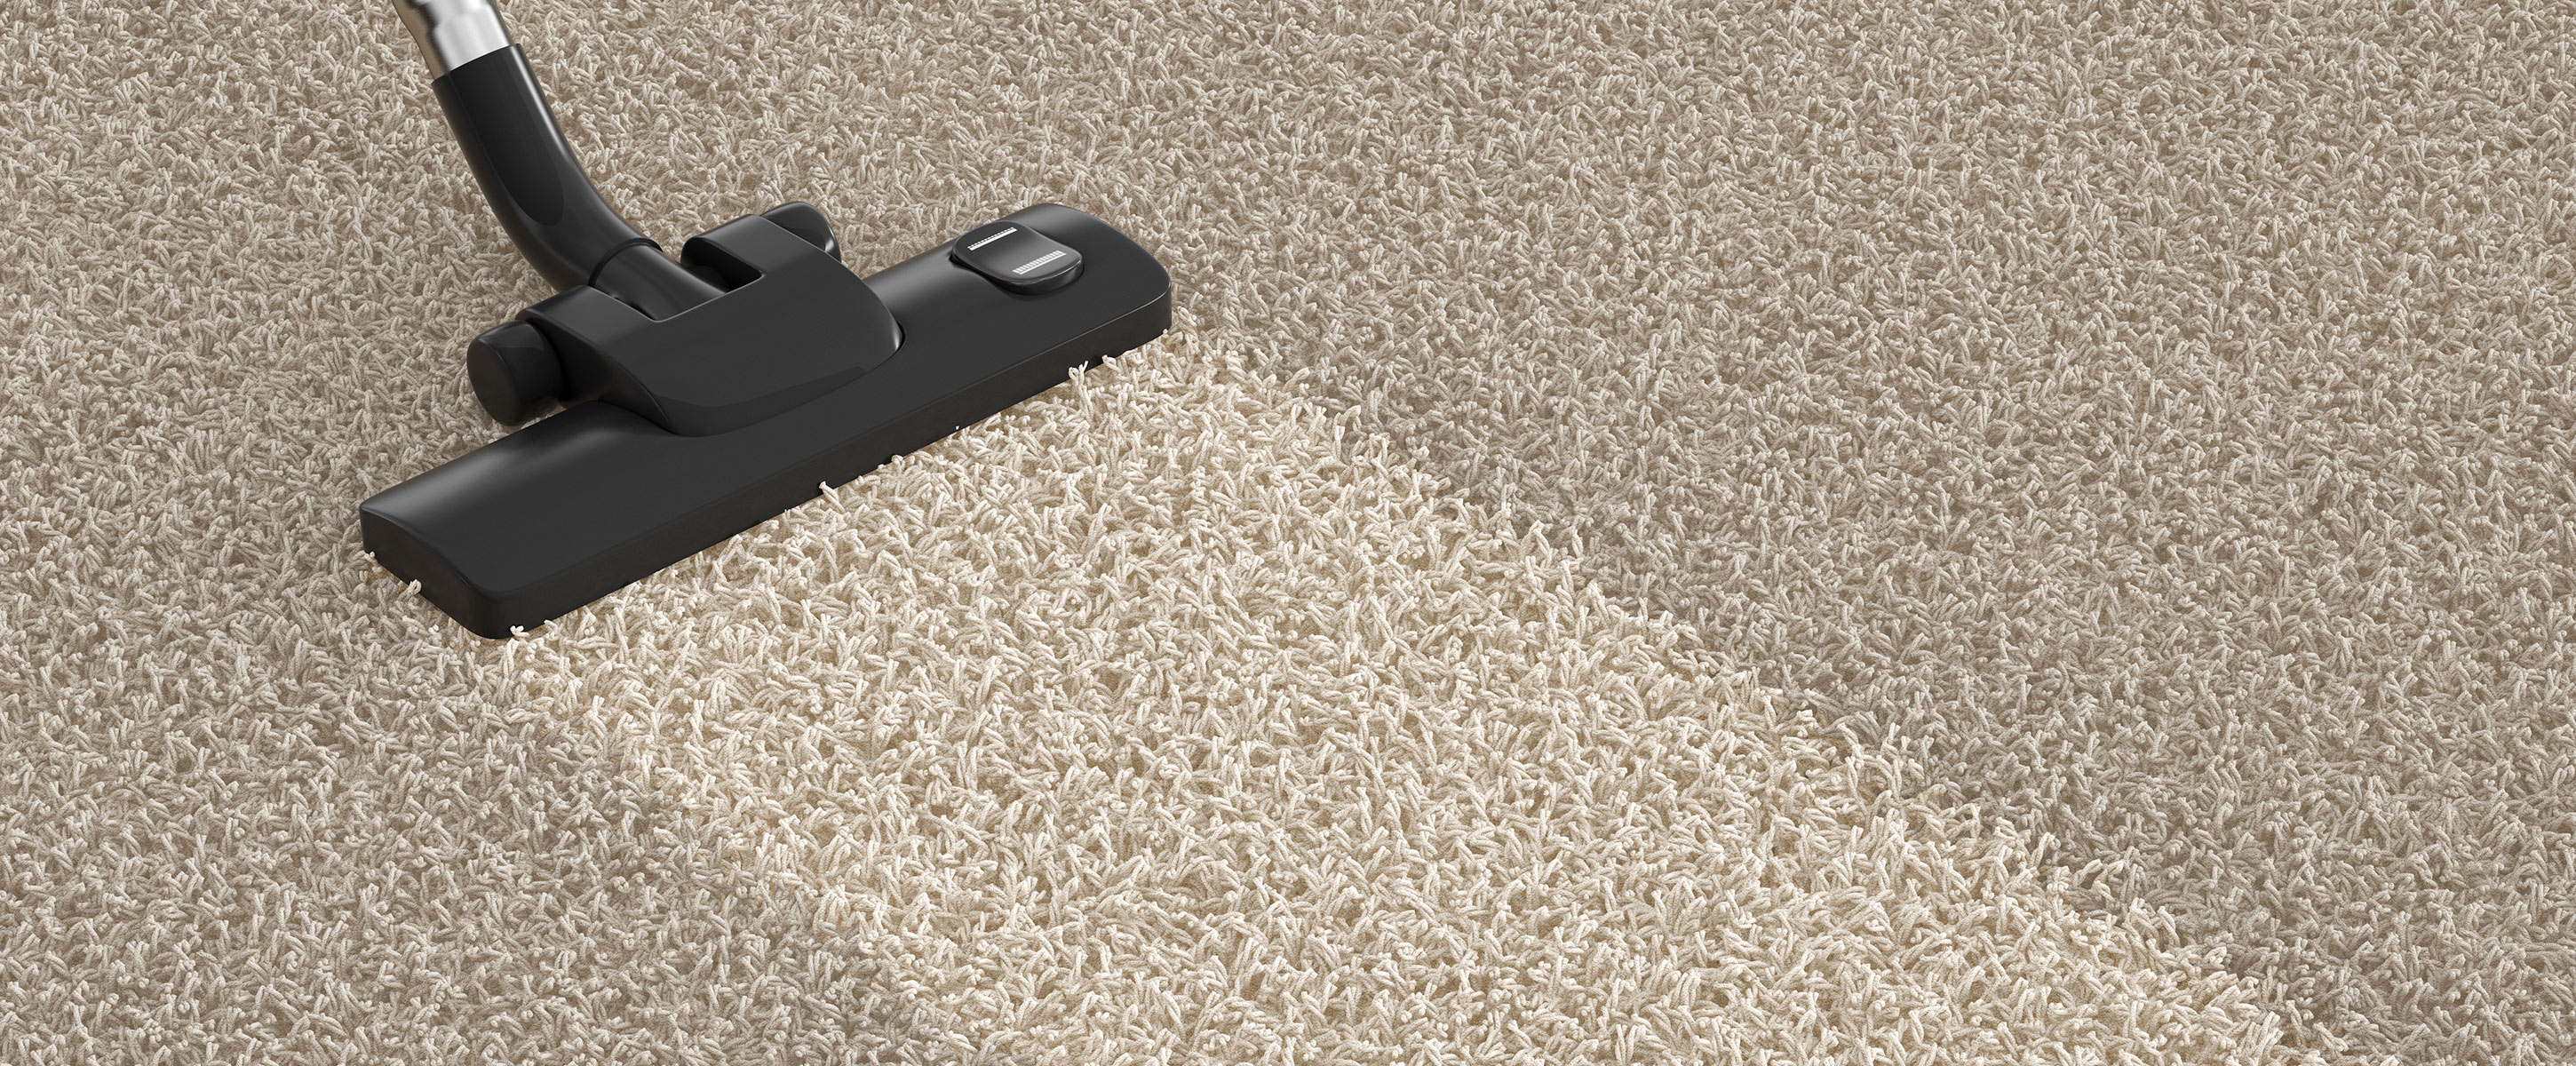 Carpet Cleaning Carpet Cleaning Services In Hialeah Sheen Cleaning